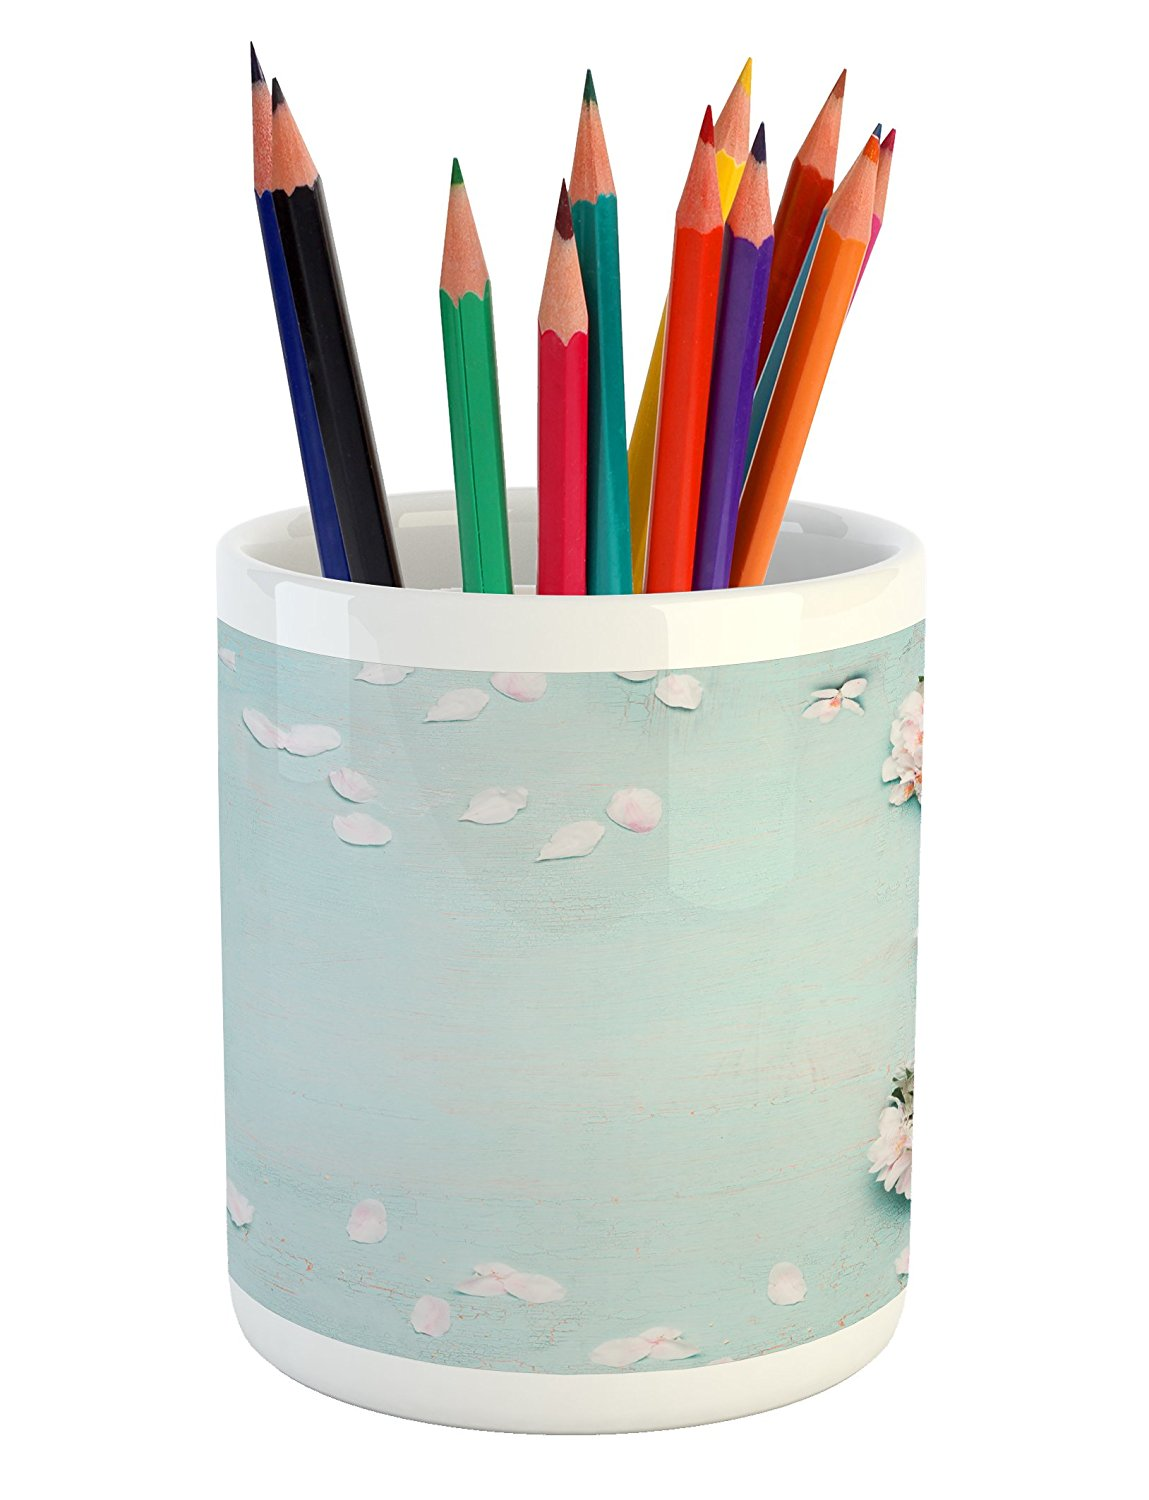 Spring Pencil Pen Holder by Lunarable, Seasonal Blossoming Pastel Toned Japanese Cherry Flowers on Worn Out Grunge Surface, Printed Ceramic Pencil Pen Holder for Desk Office Accessory, Multicolor